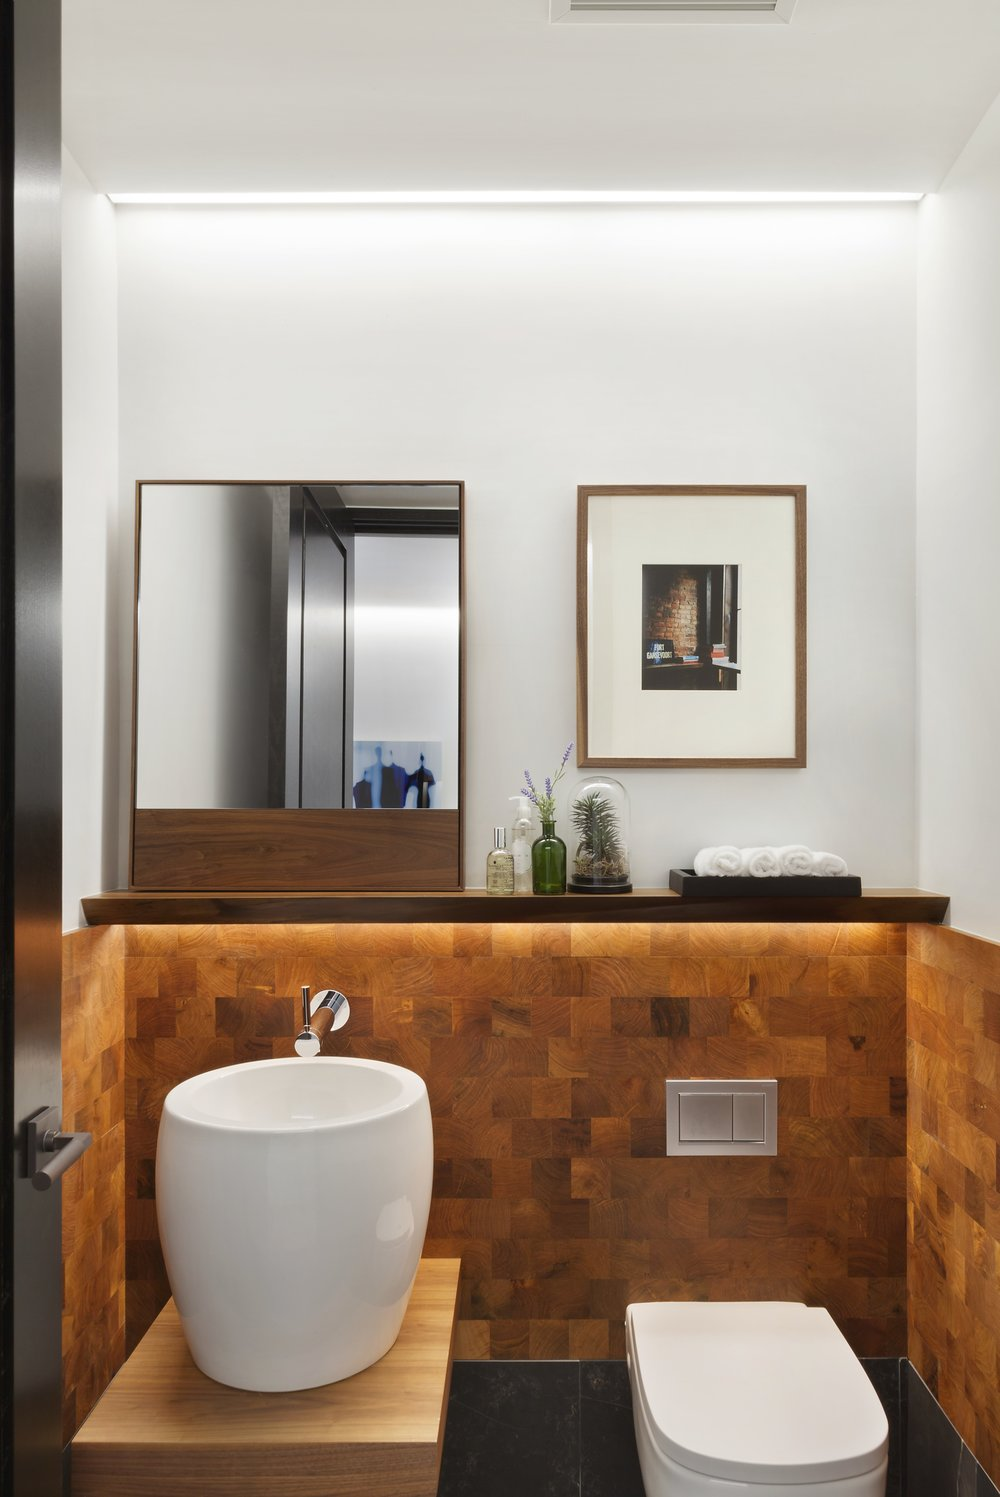 We loved designing this powder room, the basin sink surrounded by beautiful wood wall tiles result in a tranquil, almost zen effect. Bathroom designed by ODA Architecture